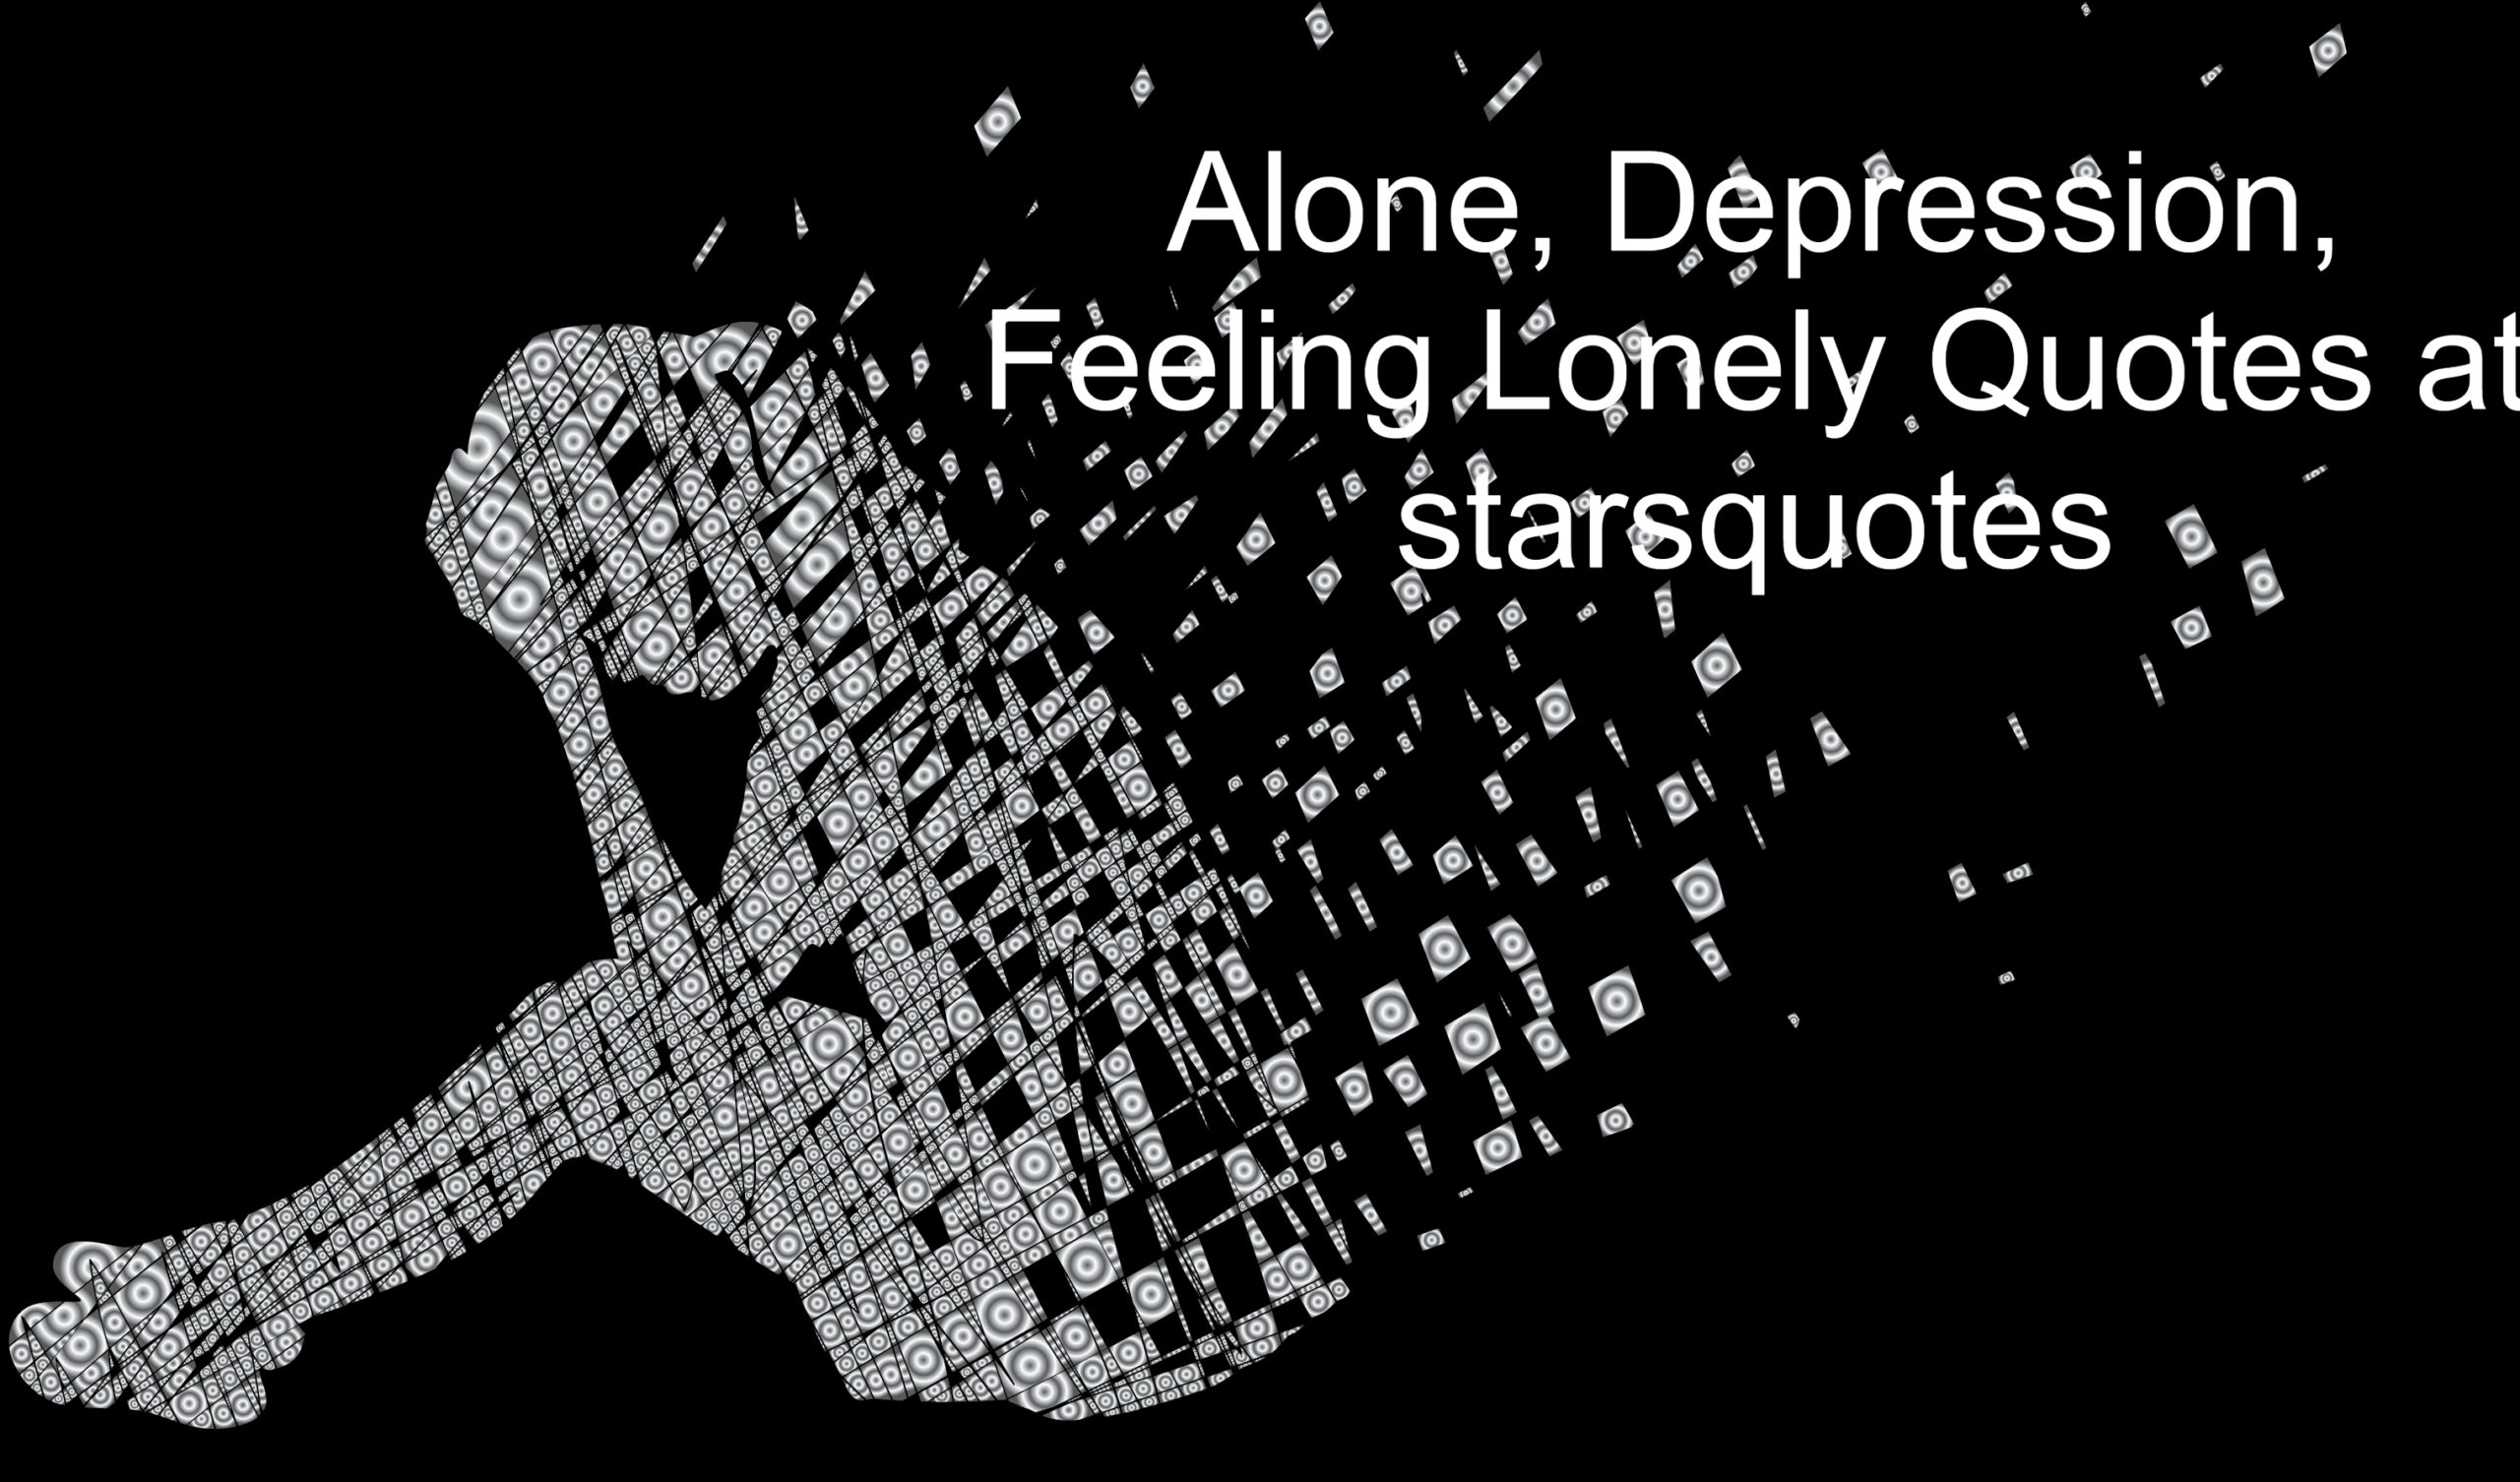 Alone, Depression, Feeling Lonely Quotes at starsquotes ...